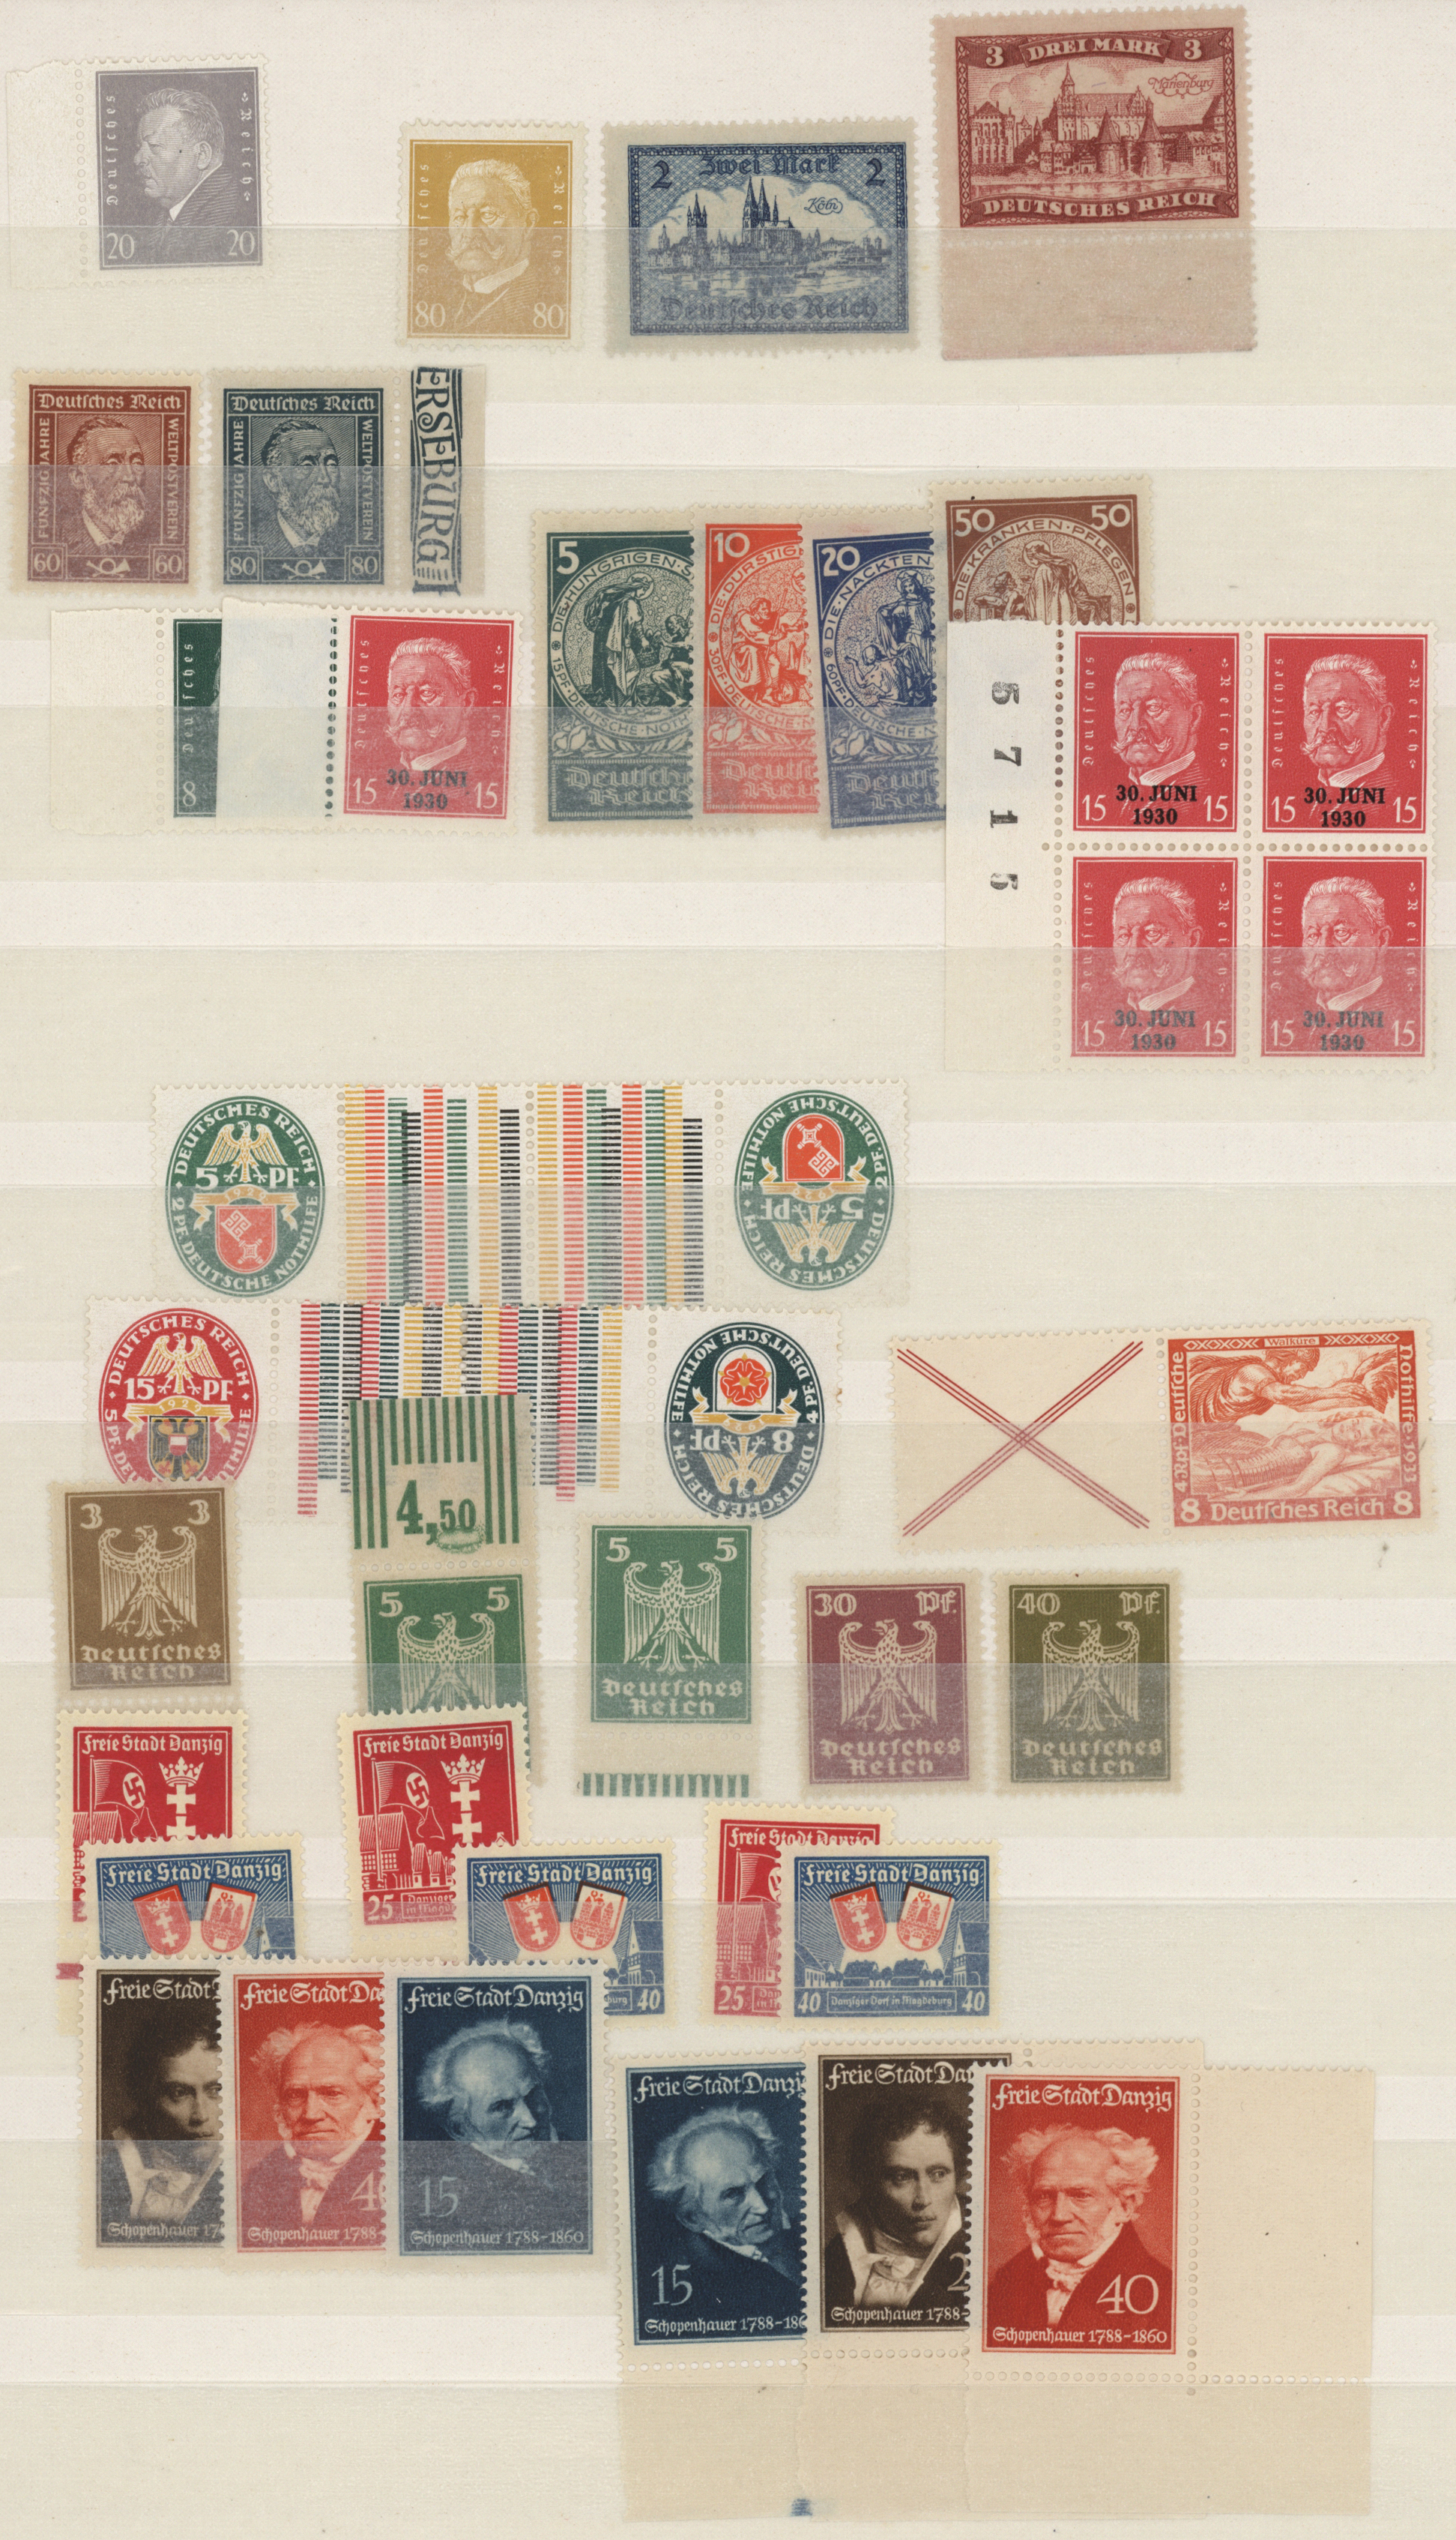 Lot 36856 - Deutsches Reich - 3. Reich  -  Auktionshaus Christoph Gärtner GmbH & Co. KG Collections Germany,  Collections Supplement, Surprise boxes #39 Day 7